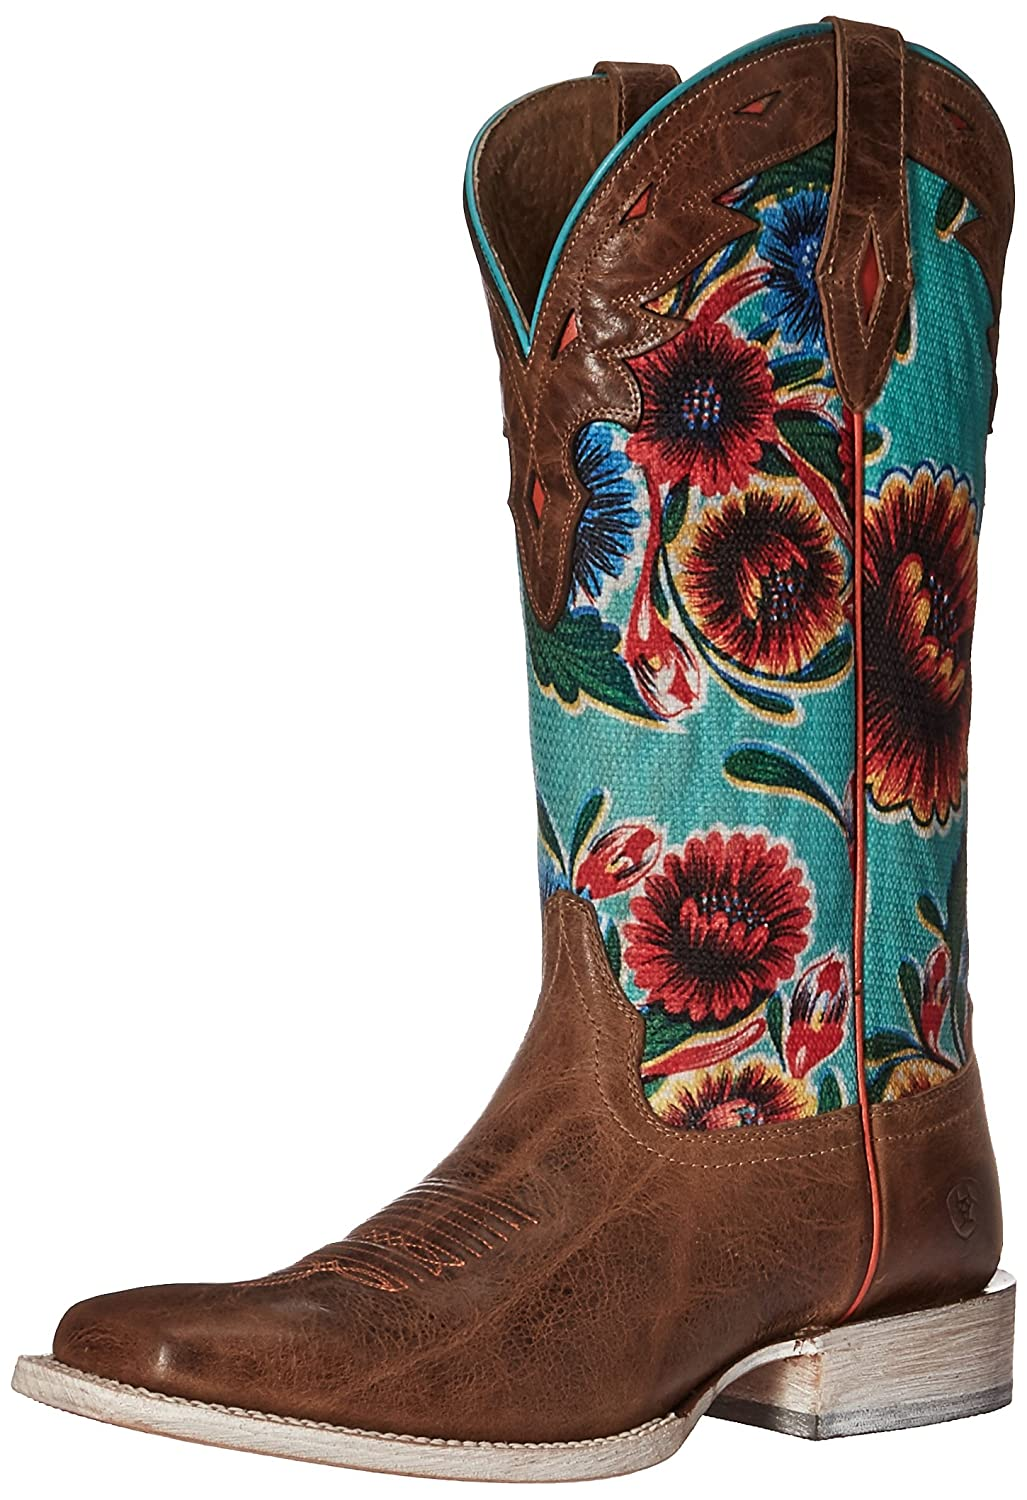 Ariat Women's Circuit Champion Western Cowboy Boot B01L853CEG 9.5 B(M) US|Bitter the Dust Brown